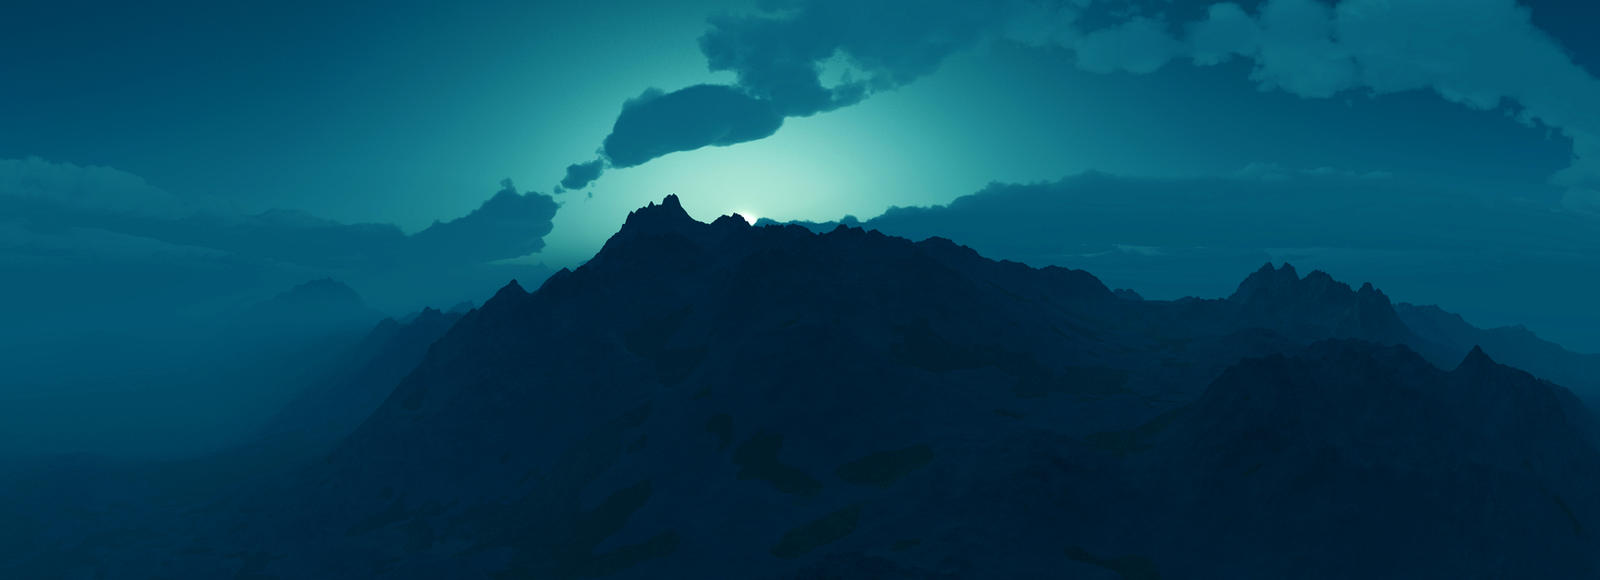 Stock Background 05 by floydier86